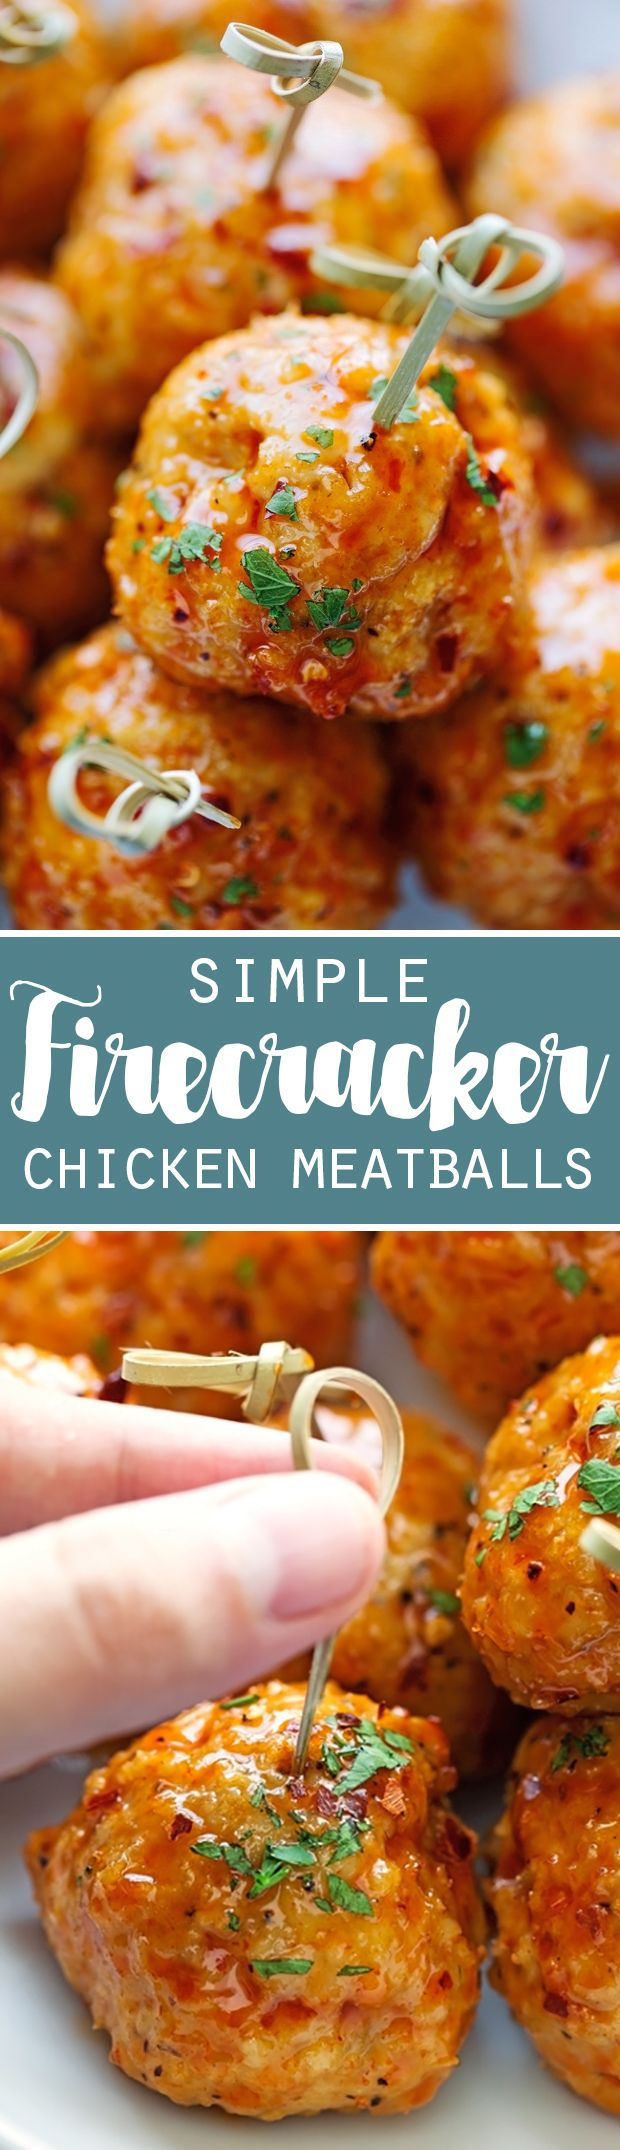 Firecracker Chicken Meatballs - These meatballs are made with chicken and taste like firecracker chicken! Easy to prepare and ready in about 30 minutes! #meatballs #chickenmeatballs #gamedayfood | Lit (Sweet Chicken Marinade)